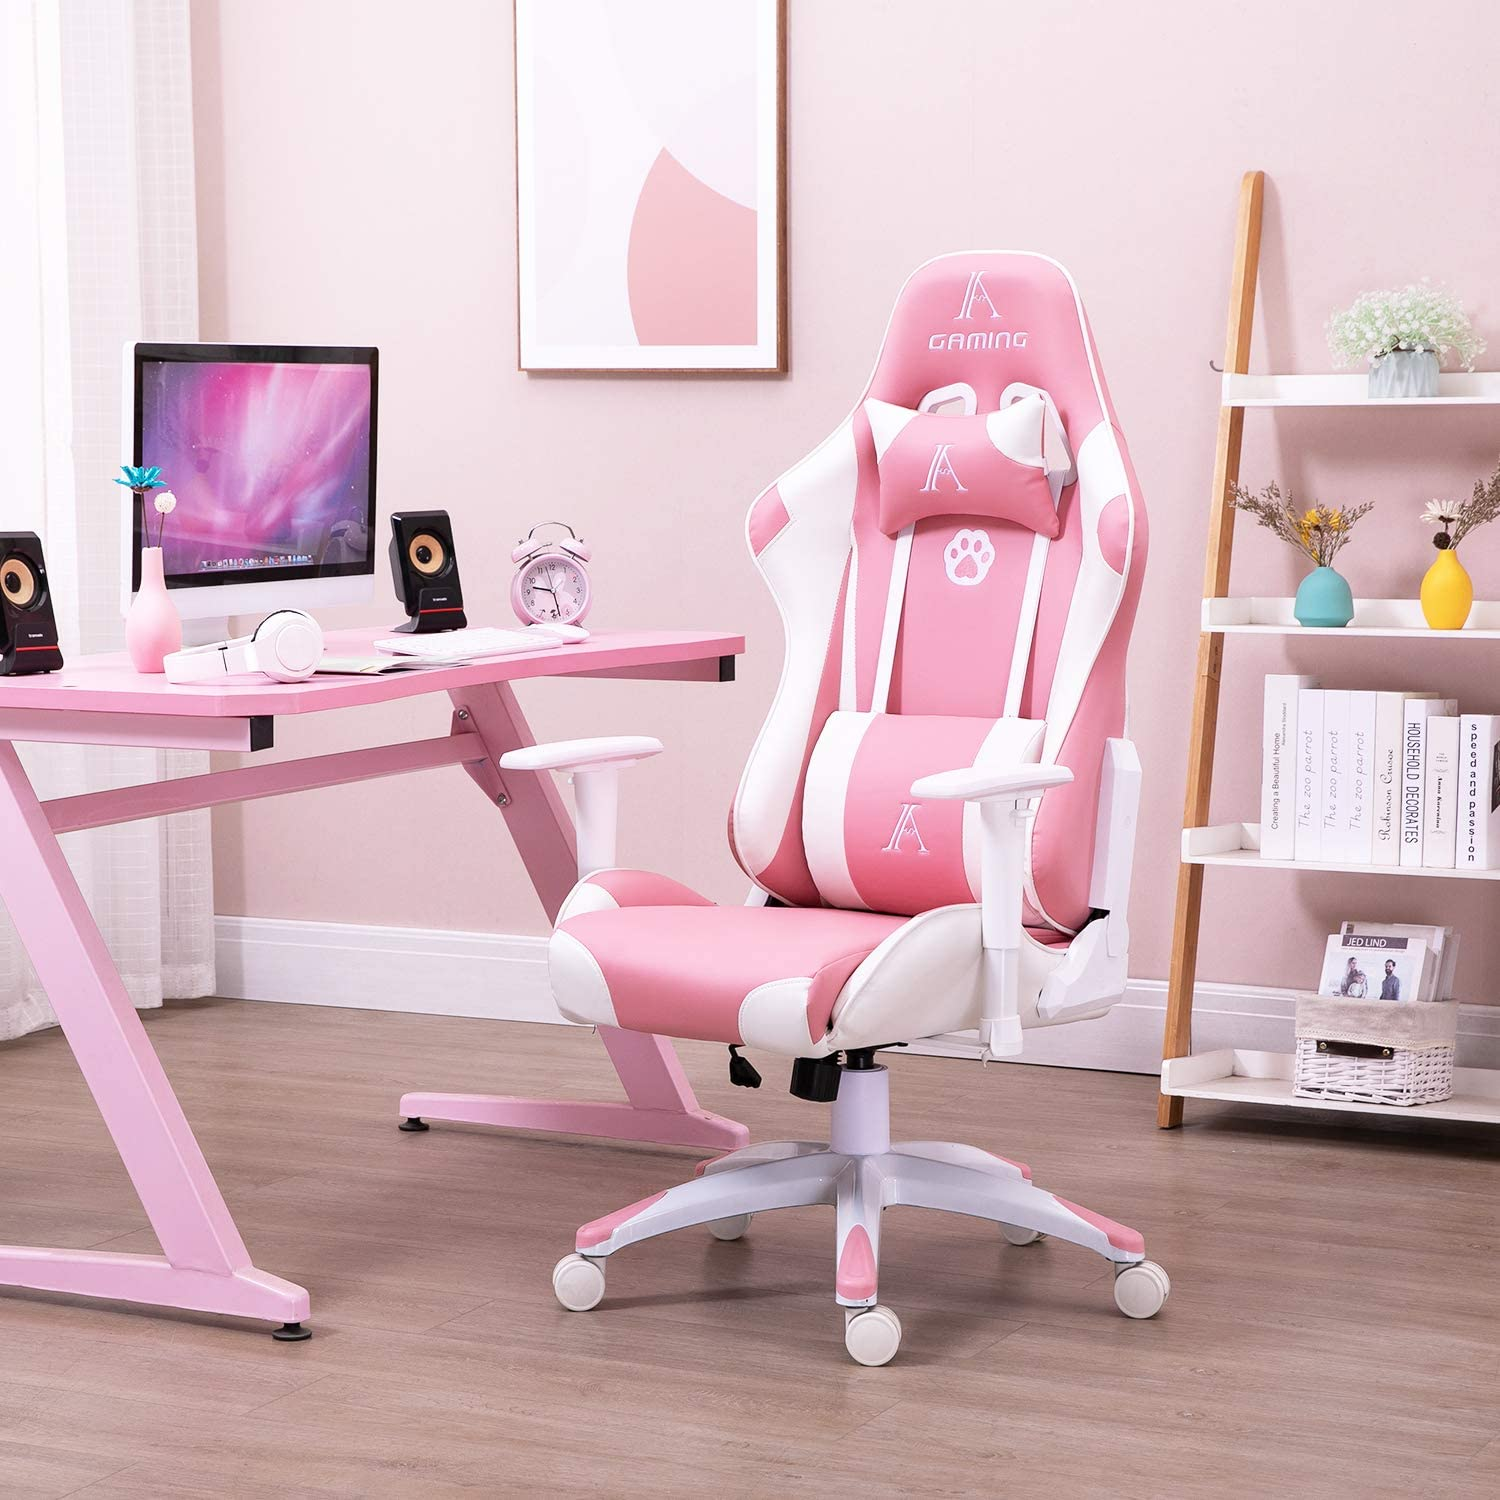 Read more about the article Pink Gaming Decor